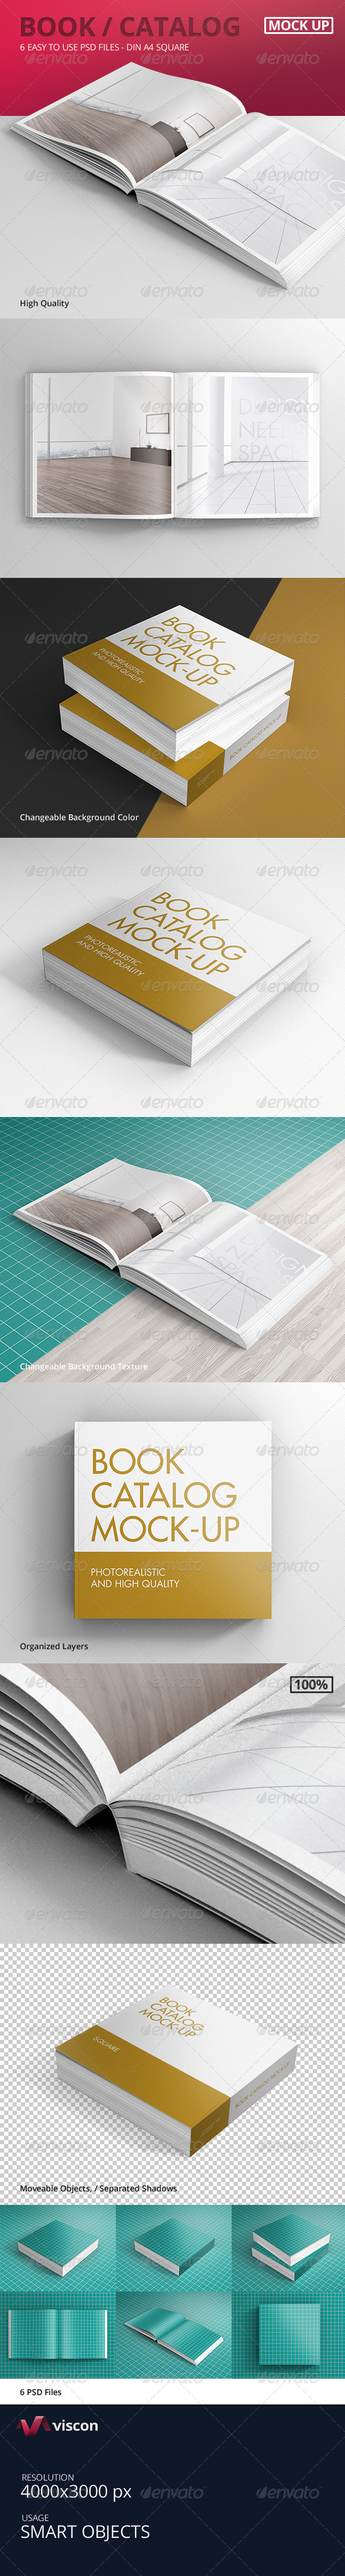 GraphicRiver Book Catalog Mock-Ups Square 8367935